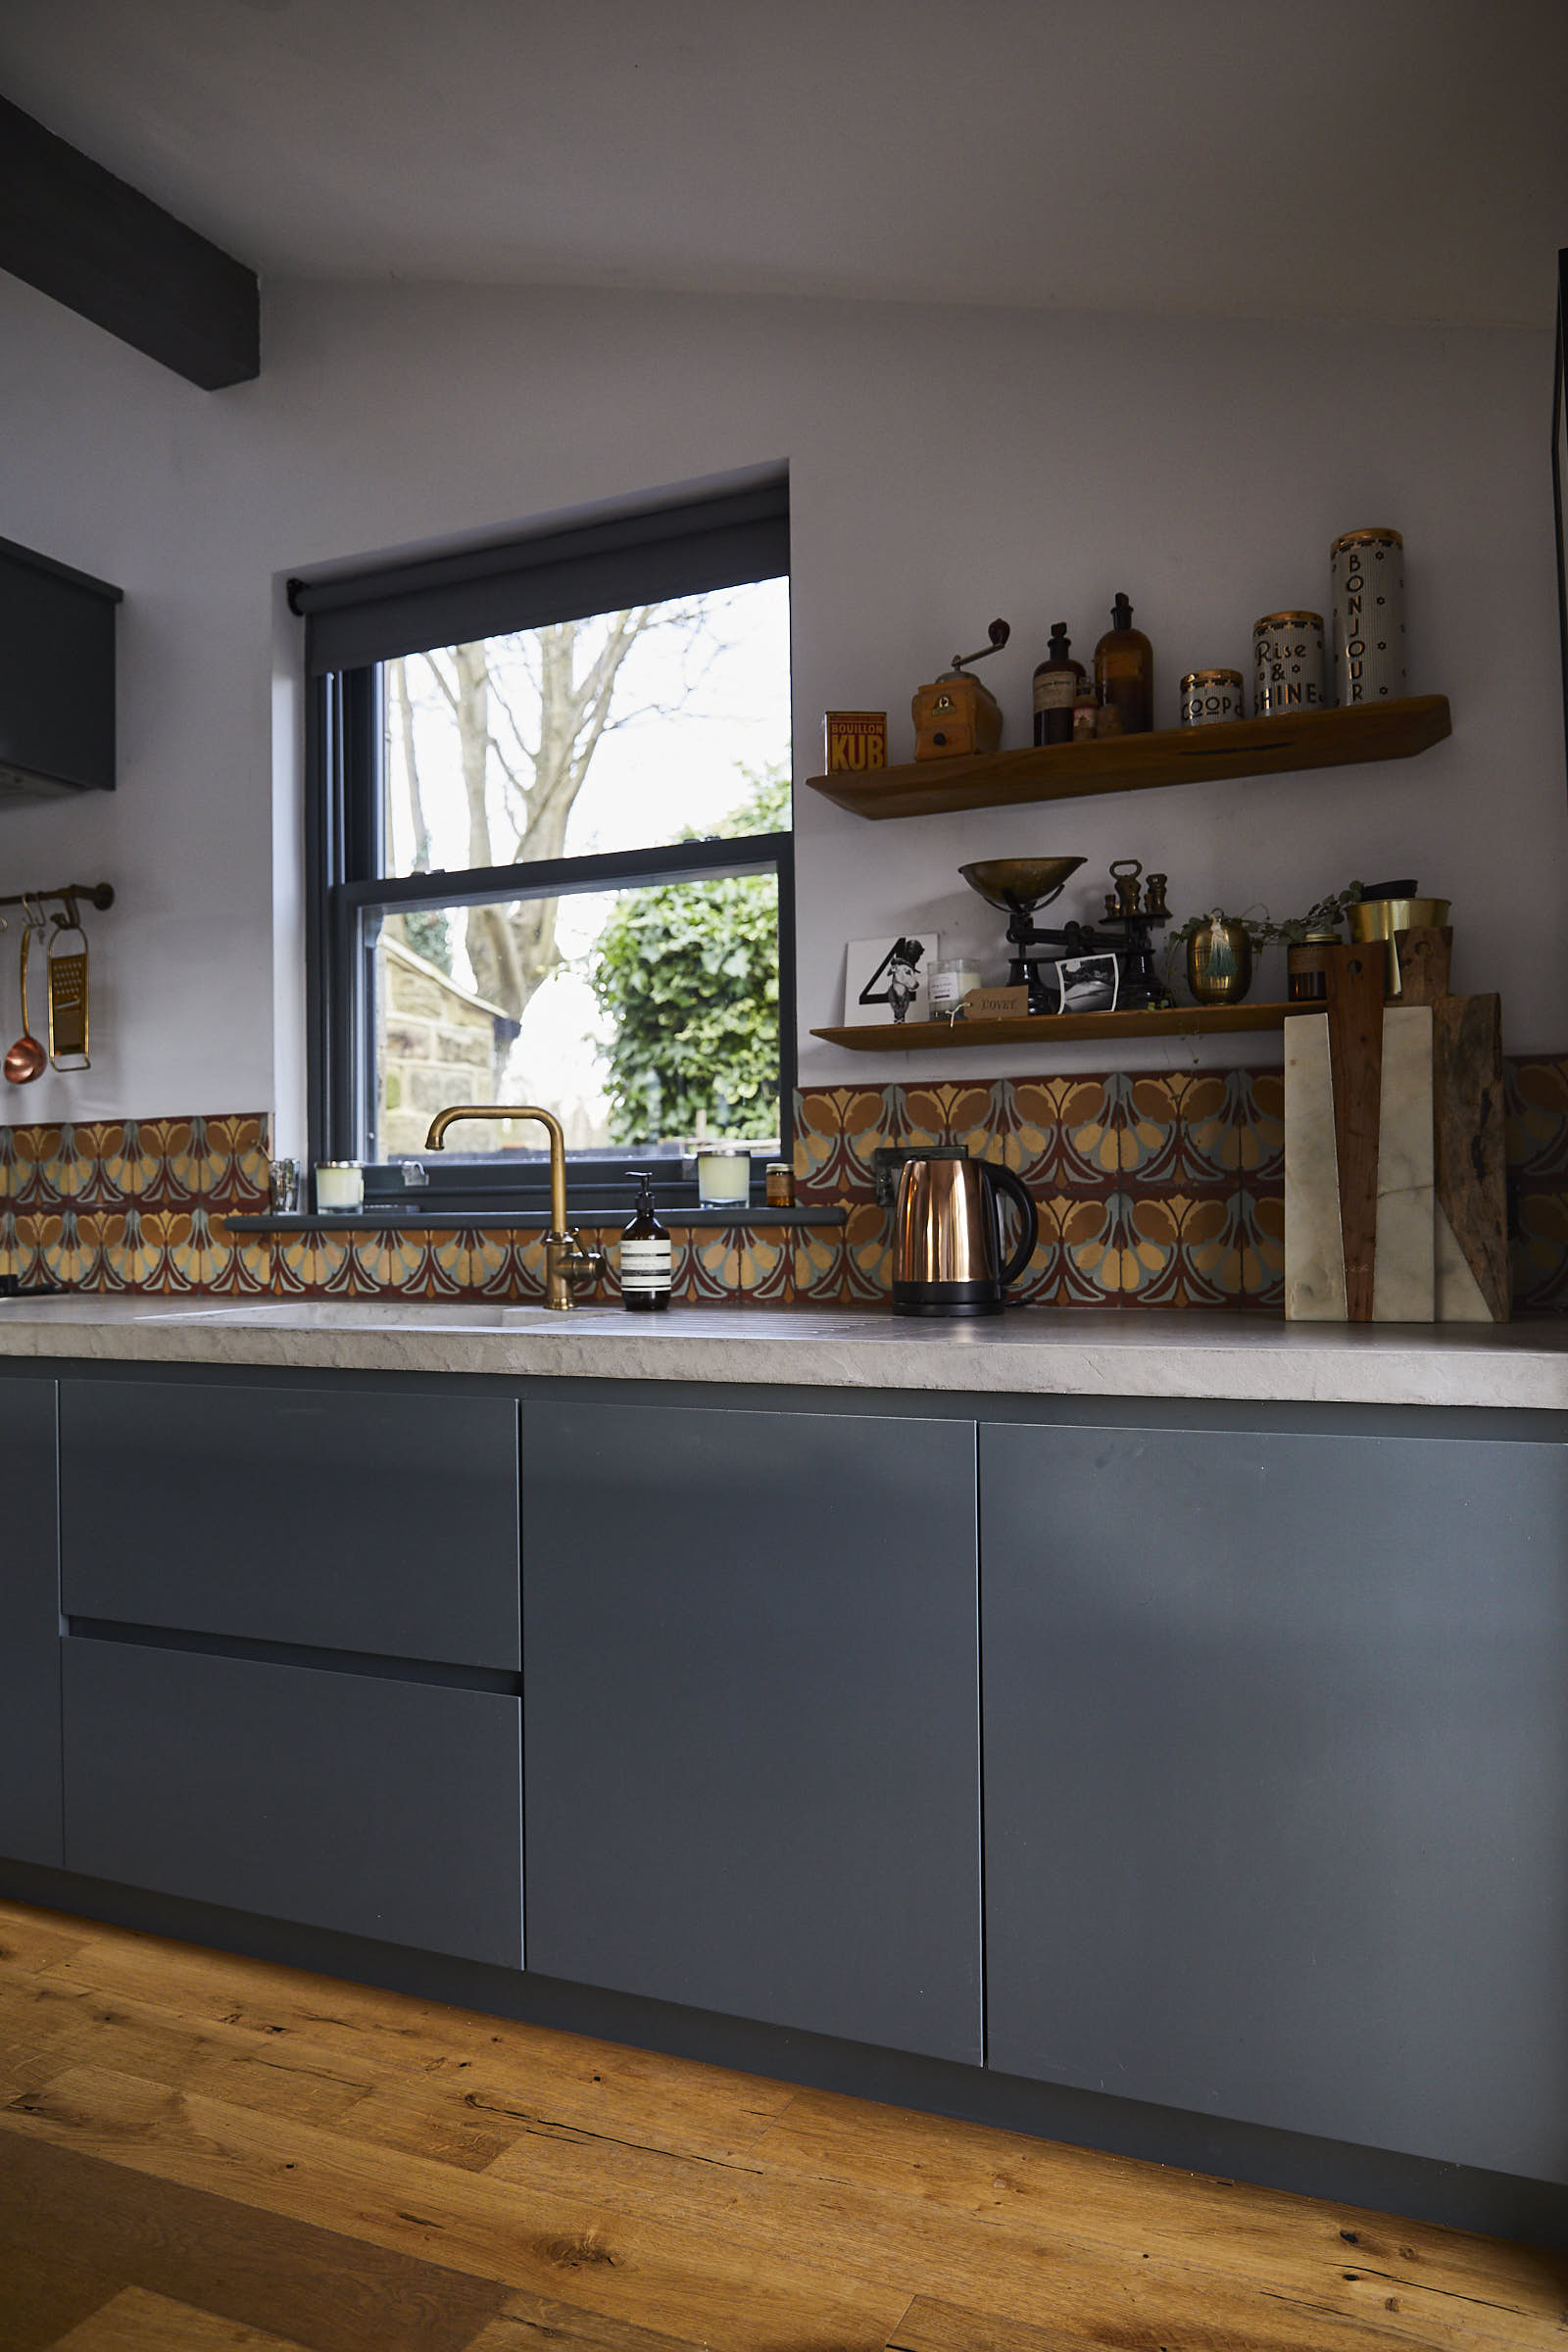 Painted bespoke kitchen units with integrated sink and solid concrete worktops